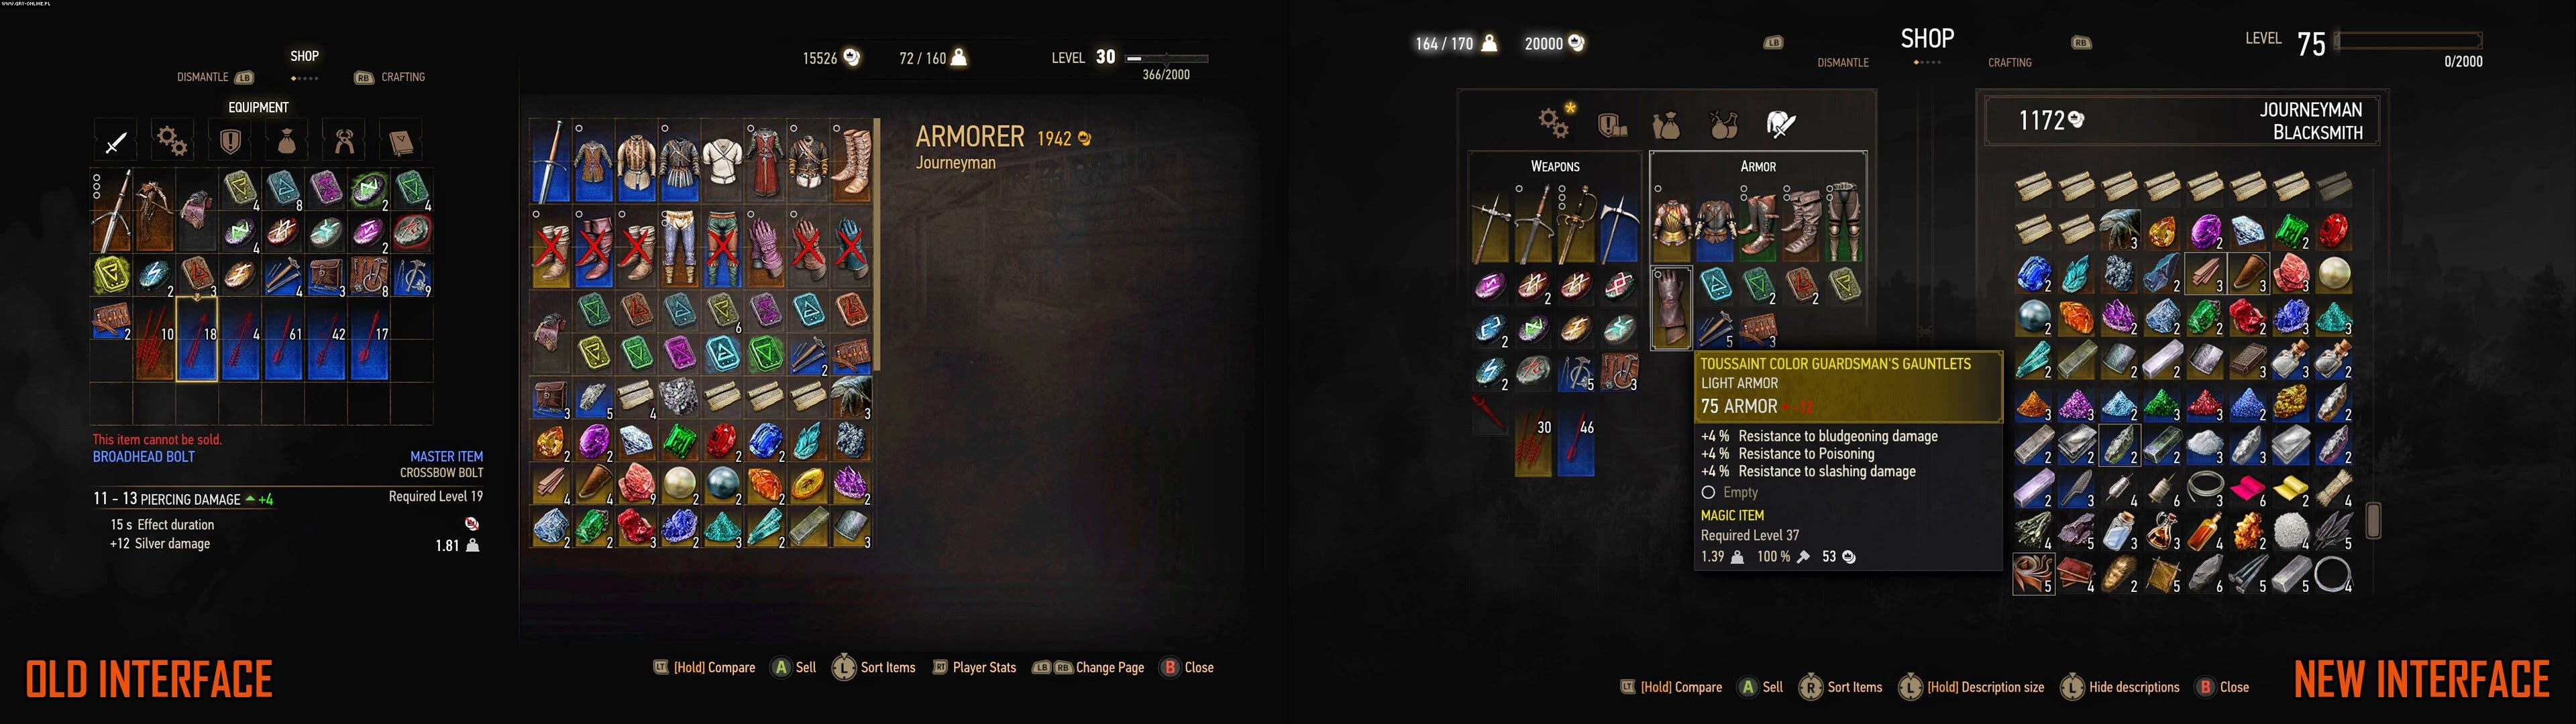 the-witcher-3-blood-and-wine-interface-5